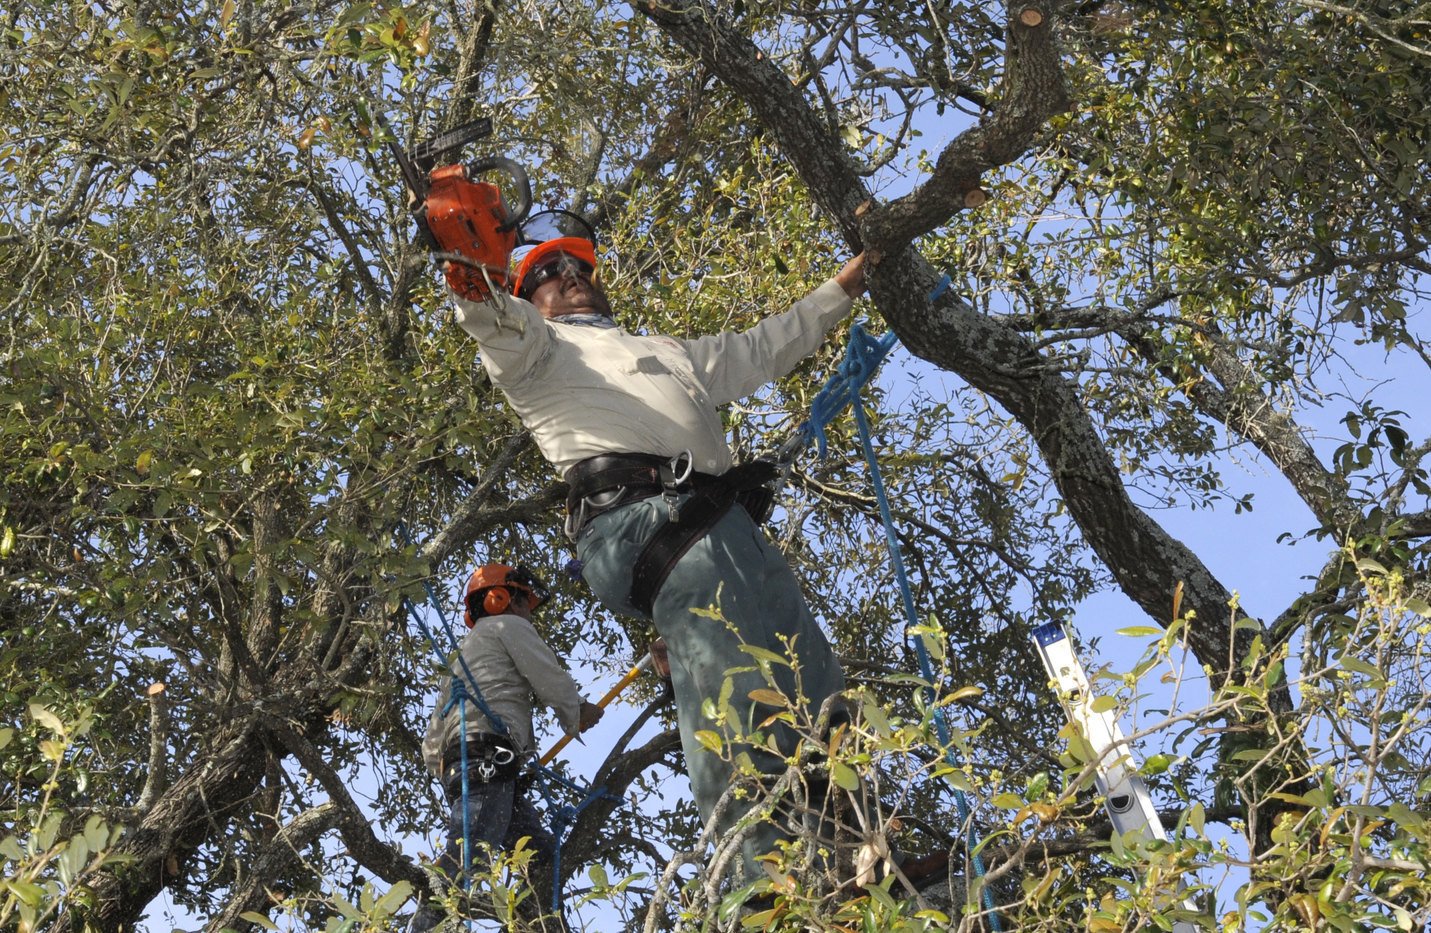 How Do You Know If a Tree Needs Pruning?